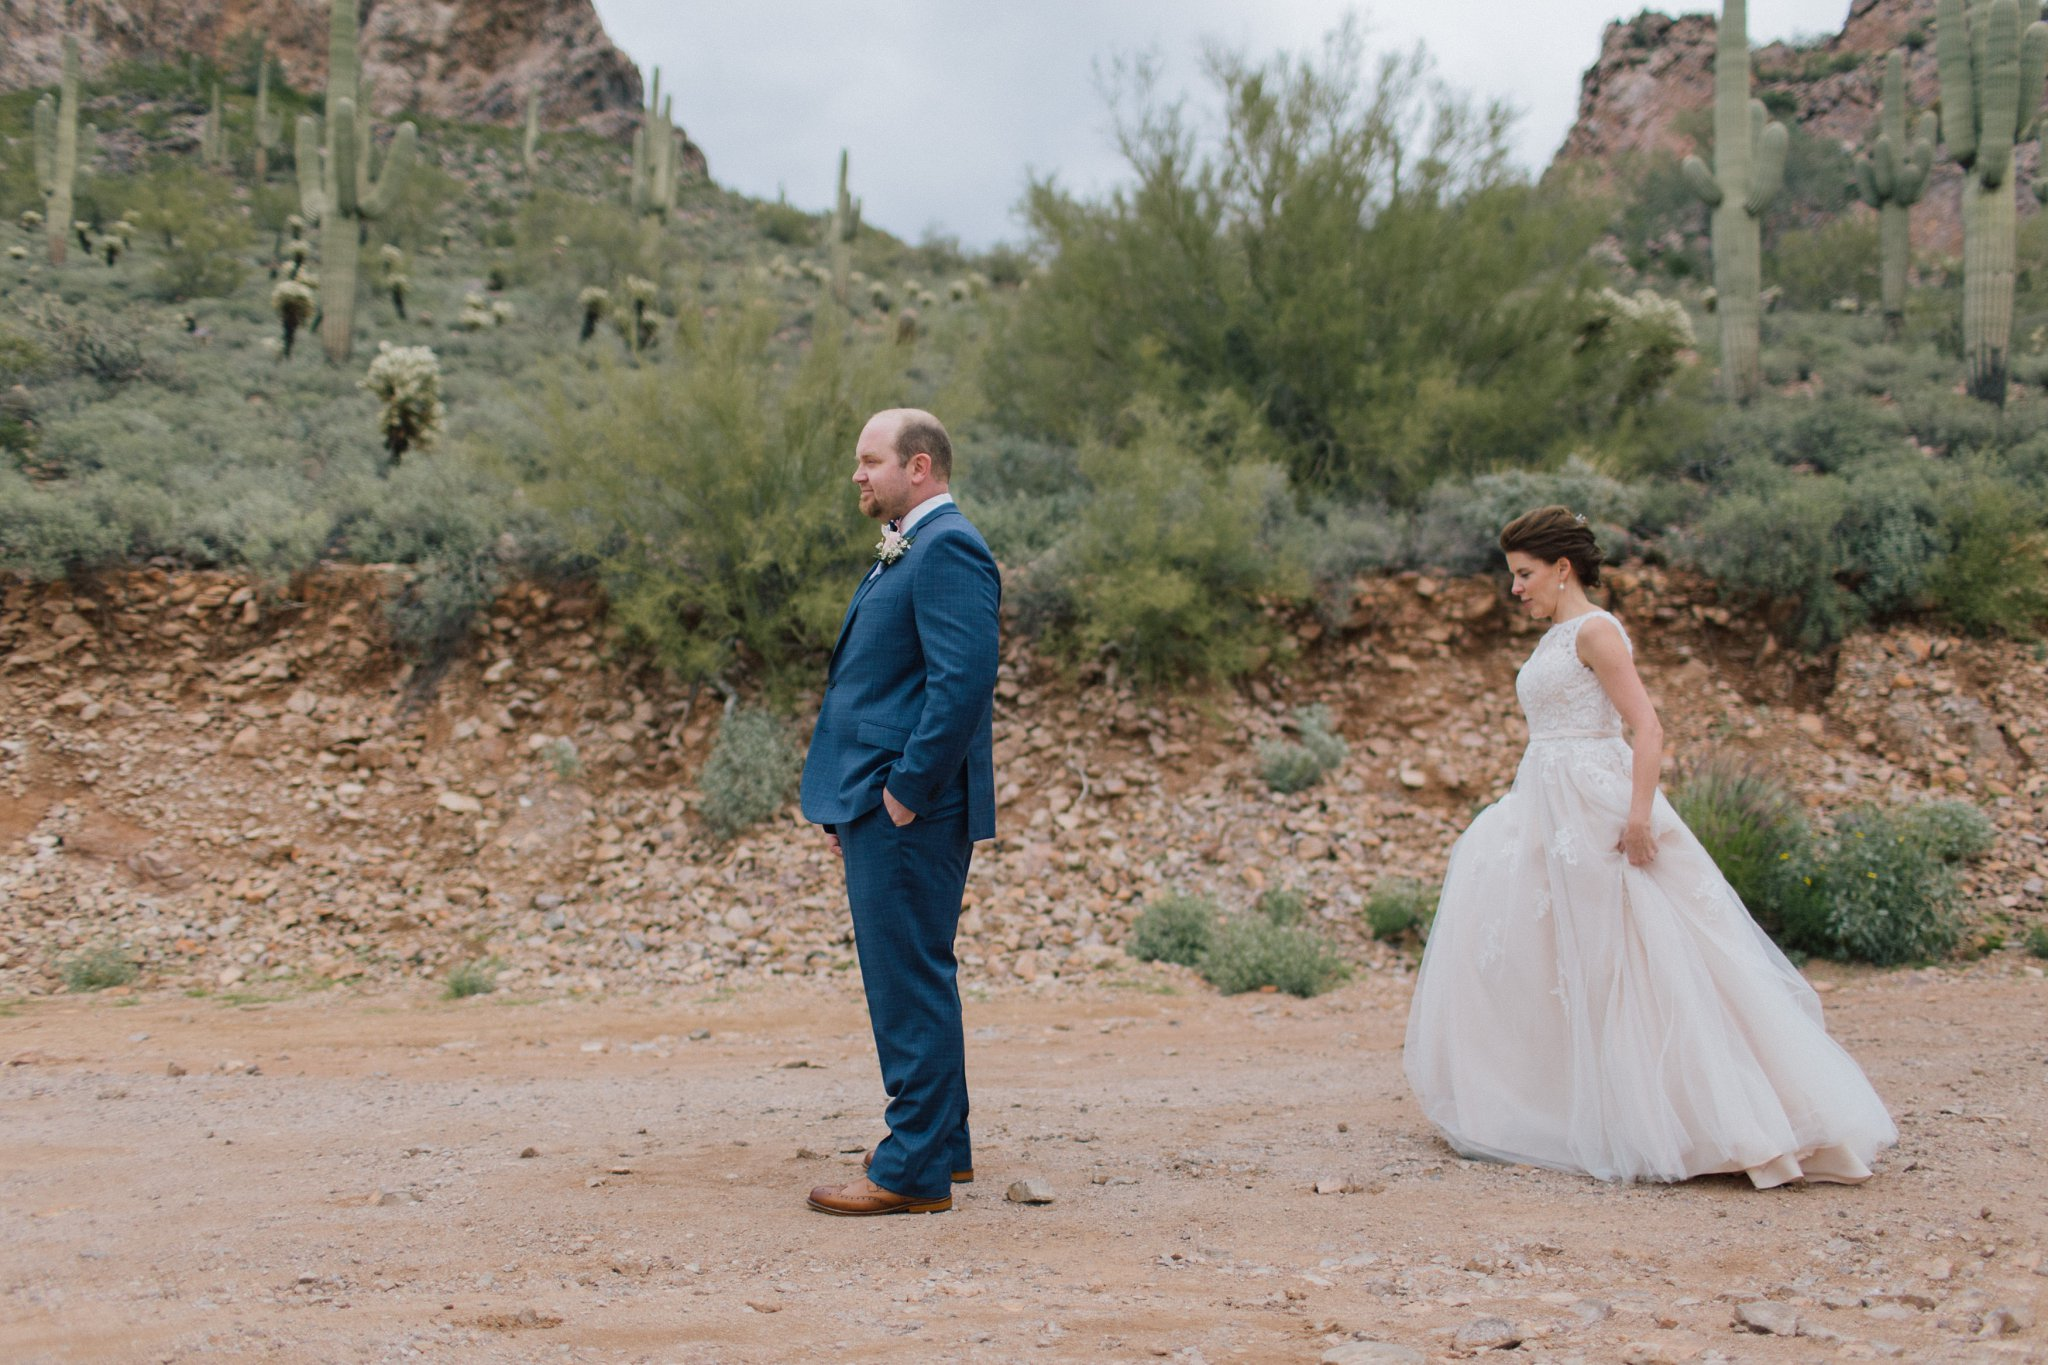 bride & groom first look in desert at Gold Canyon Golf Resort